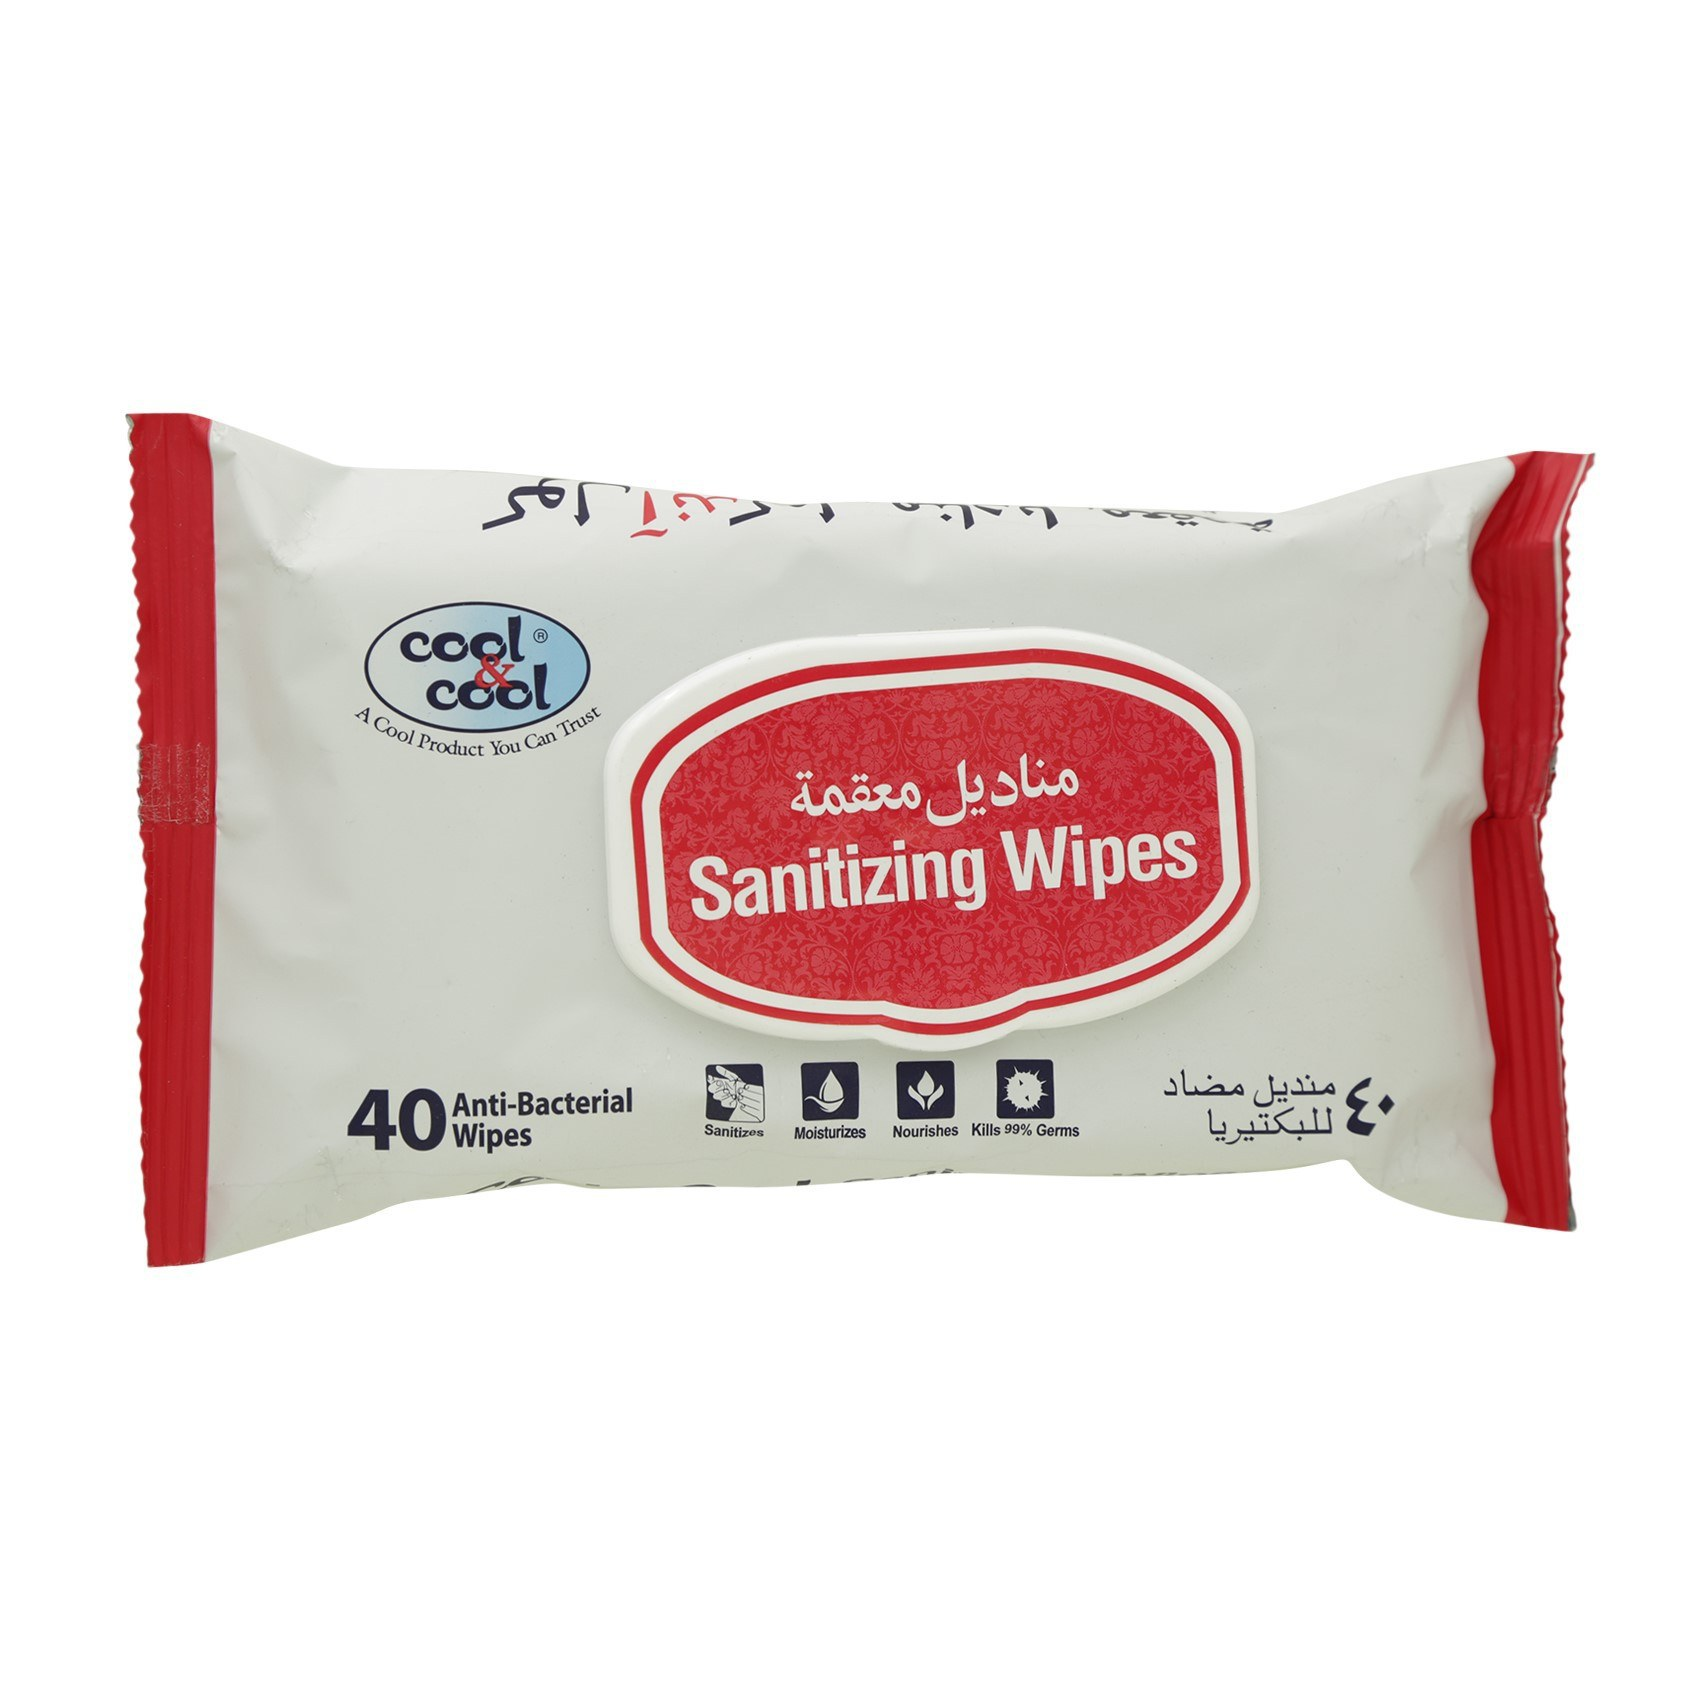 COOL&COOL - SANITIZING WIPES 40'S